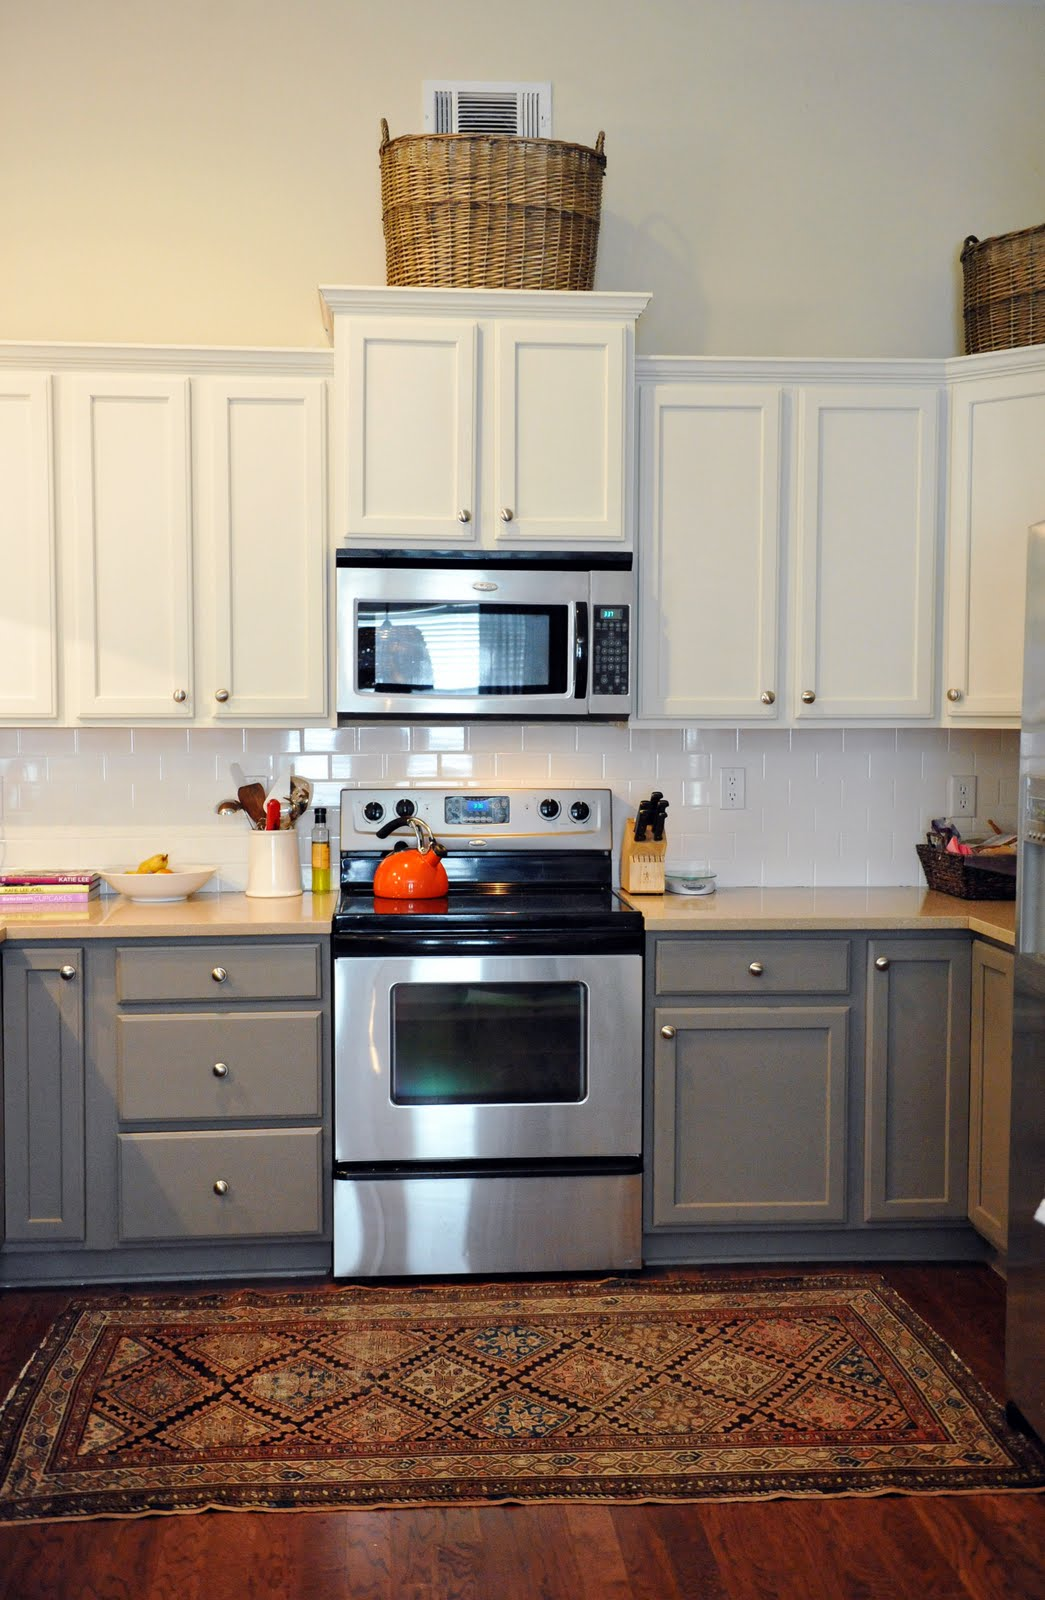 wedded whittaker: Kitchen Cabinets